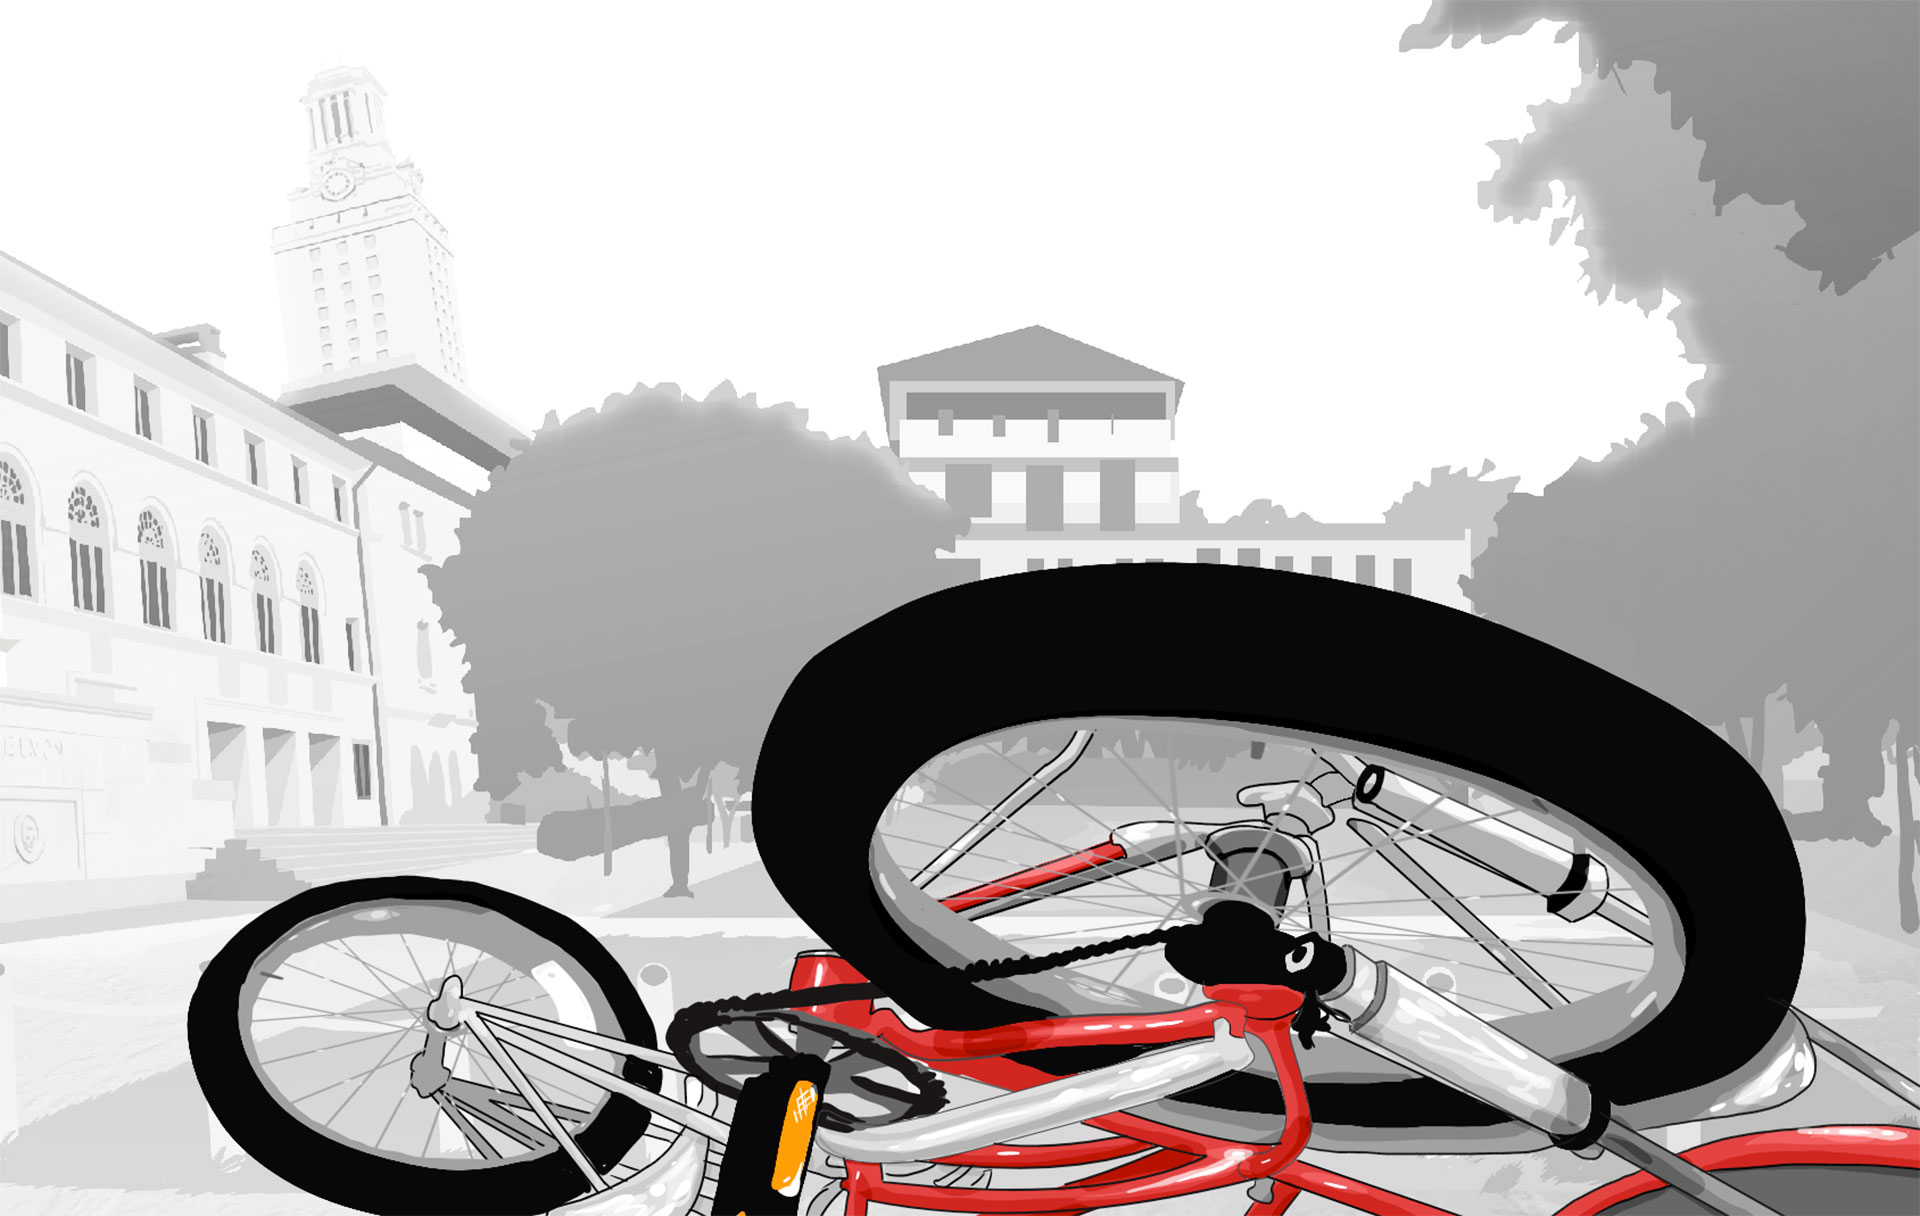 Fallen bicycle after shooting at UT Austin, as animated in the film TOWER